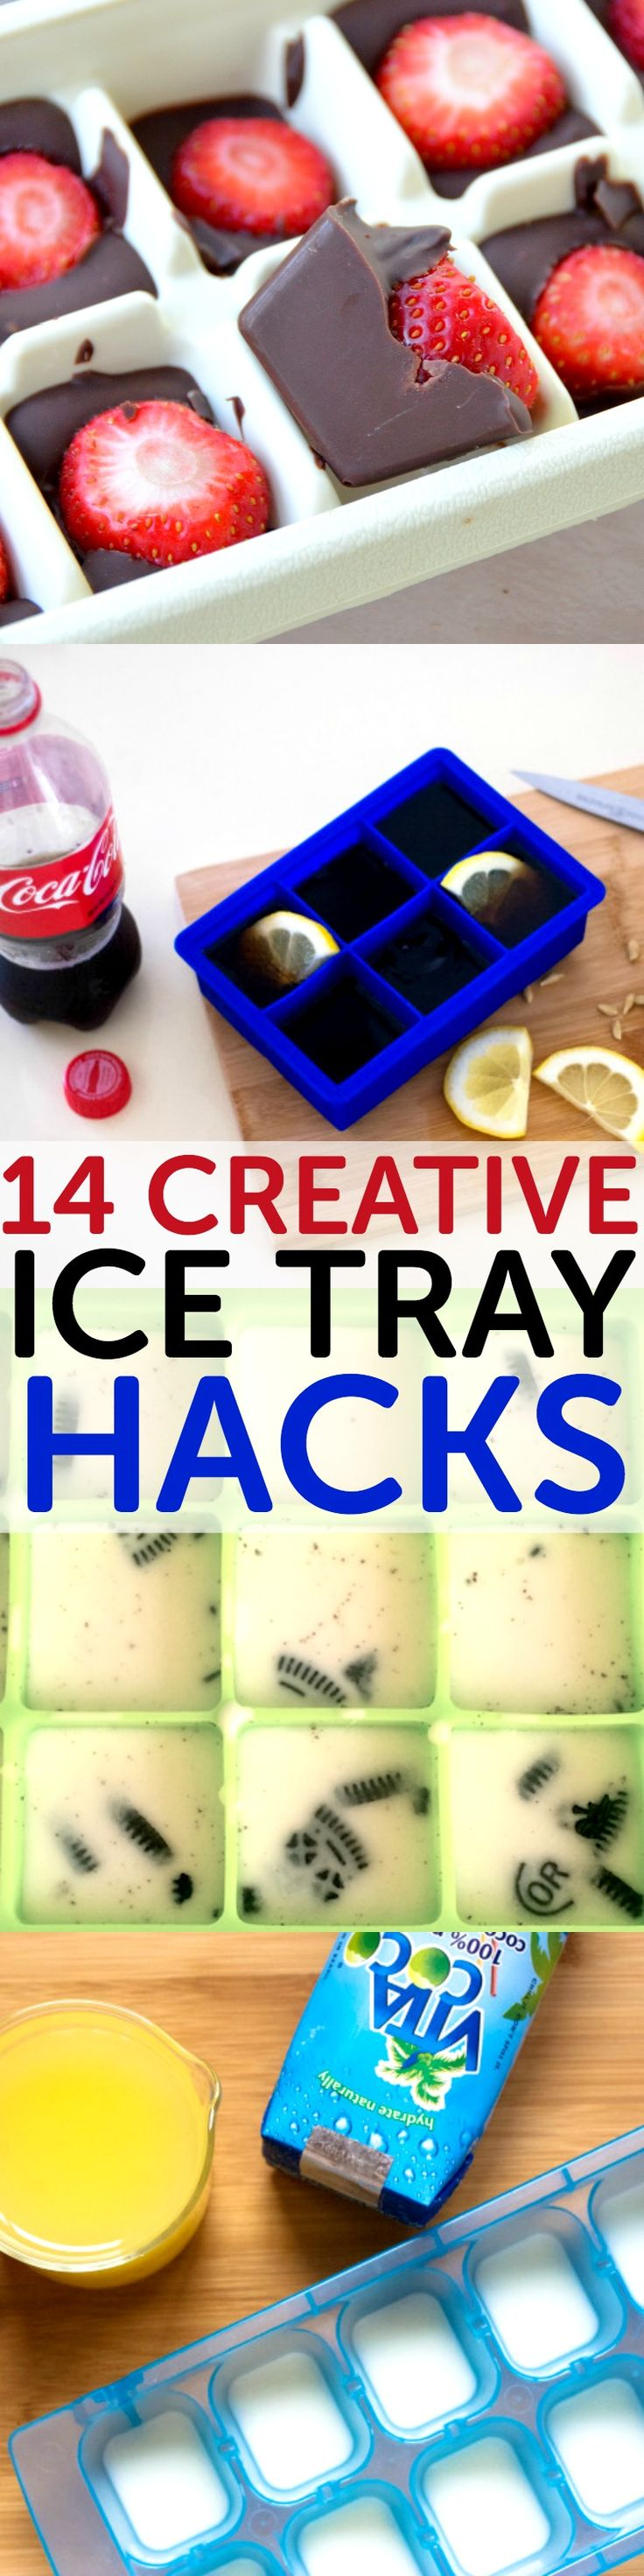 14 creative ice tray hacks and recipes                                                                                                                                                                                 More